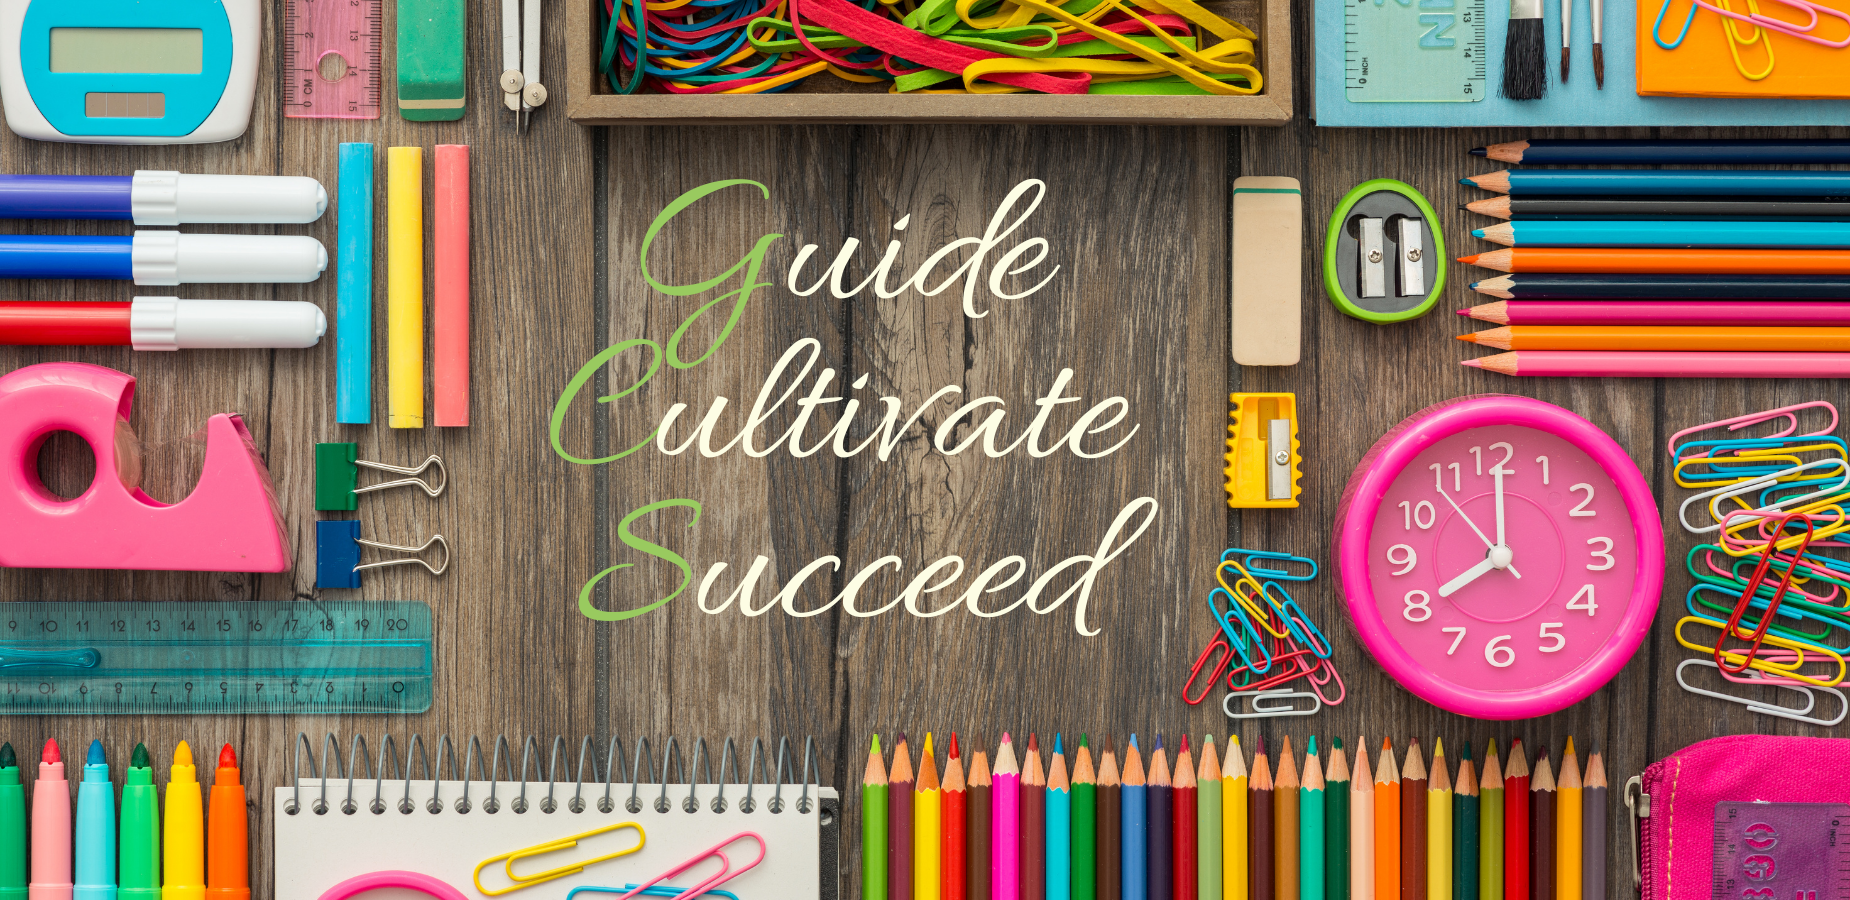 Guide Cultivate Succeed